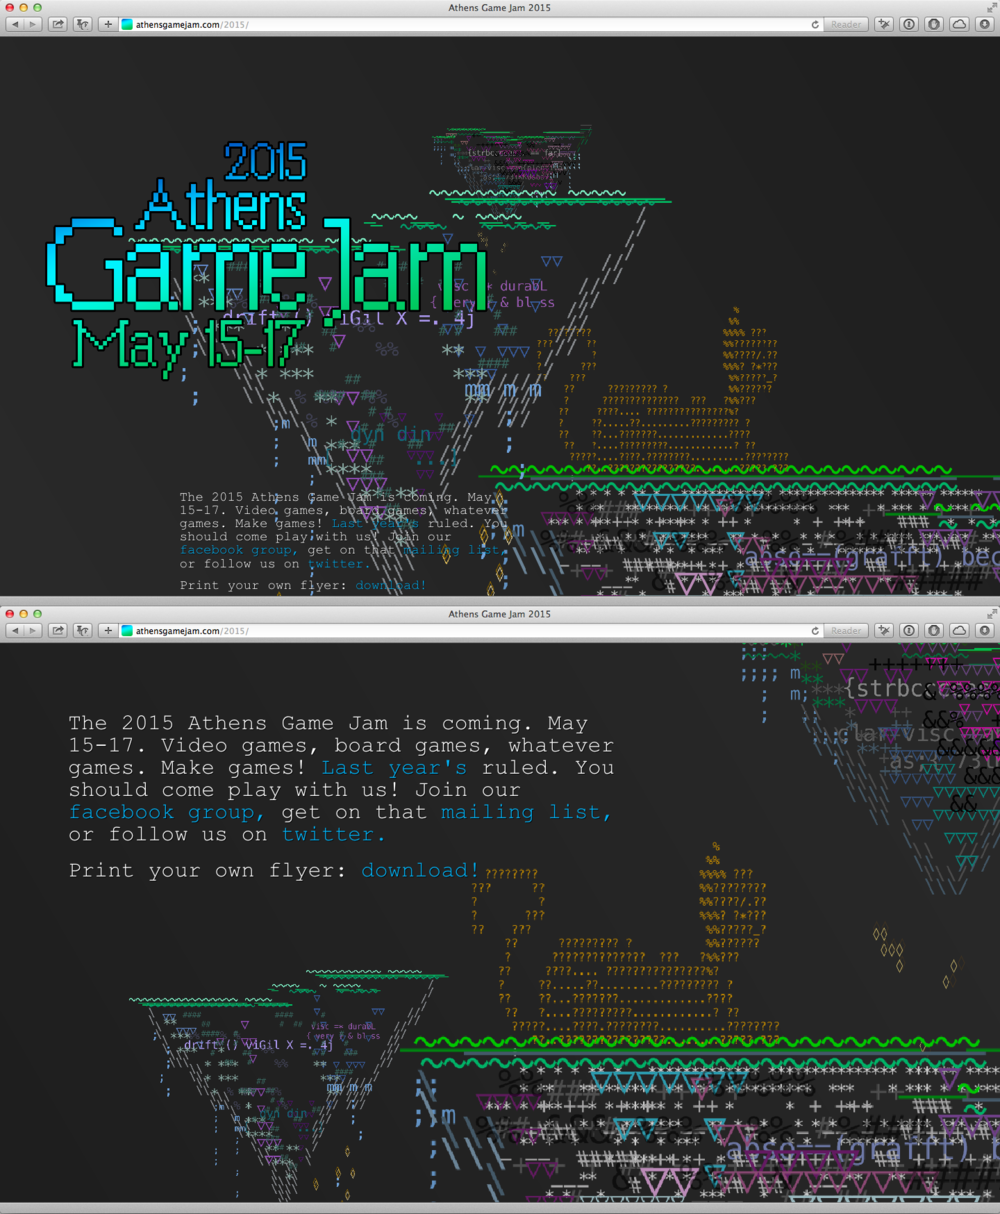 "Athens Game Jam 2015 Site    Photoshop + Monodraw + Web   In less than a week, I made this site and accompanying flyer for the annual Athens Game Jam. The coordinator of the Jam, Stephen Borden, gave me a week to make it. I said I would do it, but only if he gave me a prompt. The prompt he gave me was ""floating islands.""  In the jam spirit, I tried out a bunch of new stuff. I'd never done anything with ASCII art or CSS Animation prior to this project. I was generously given access to the alpha version of  Monodraw , an app for drawing ASCII art, which I put through its paces. Then I copied groups of characters into Photoshop, arranged and colored them, and then arranged those elements into a flyer and this site.  When you scroll the page, it doesn't move  down , it moves things  around . My favorite part of the site is that, if you leave the page up for a couple of minutes, the elements begin to glitch out, which is all accomplished with CSS Animation and Transformations.  Site made with Hammer.app, Sublime Text 2, HAML/SCSS, Javascript, Skrollr.js, and a subset of Zurb Foundation.  View the site live  here ."